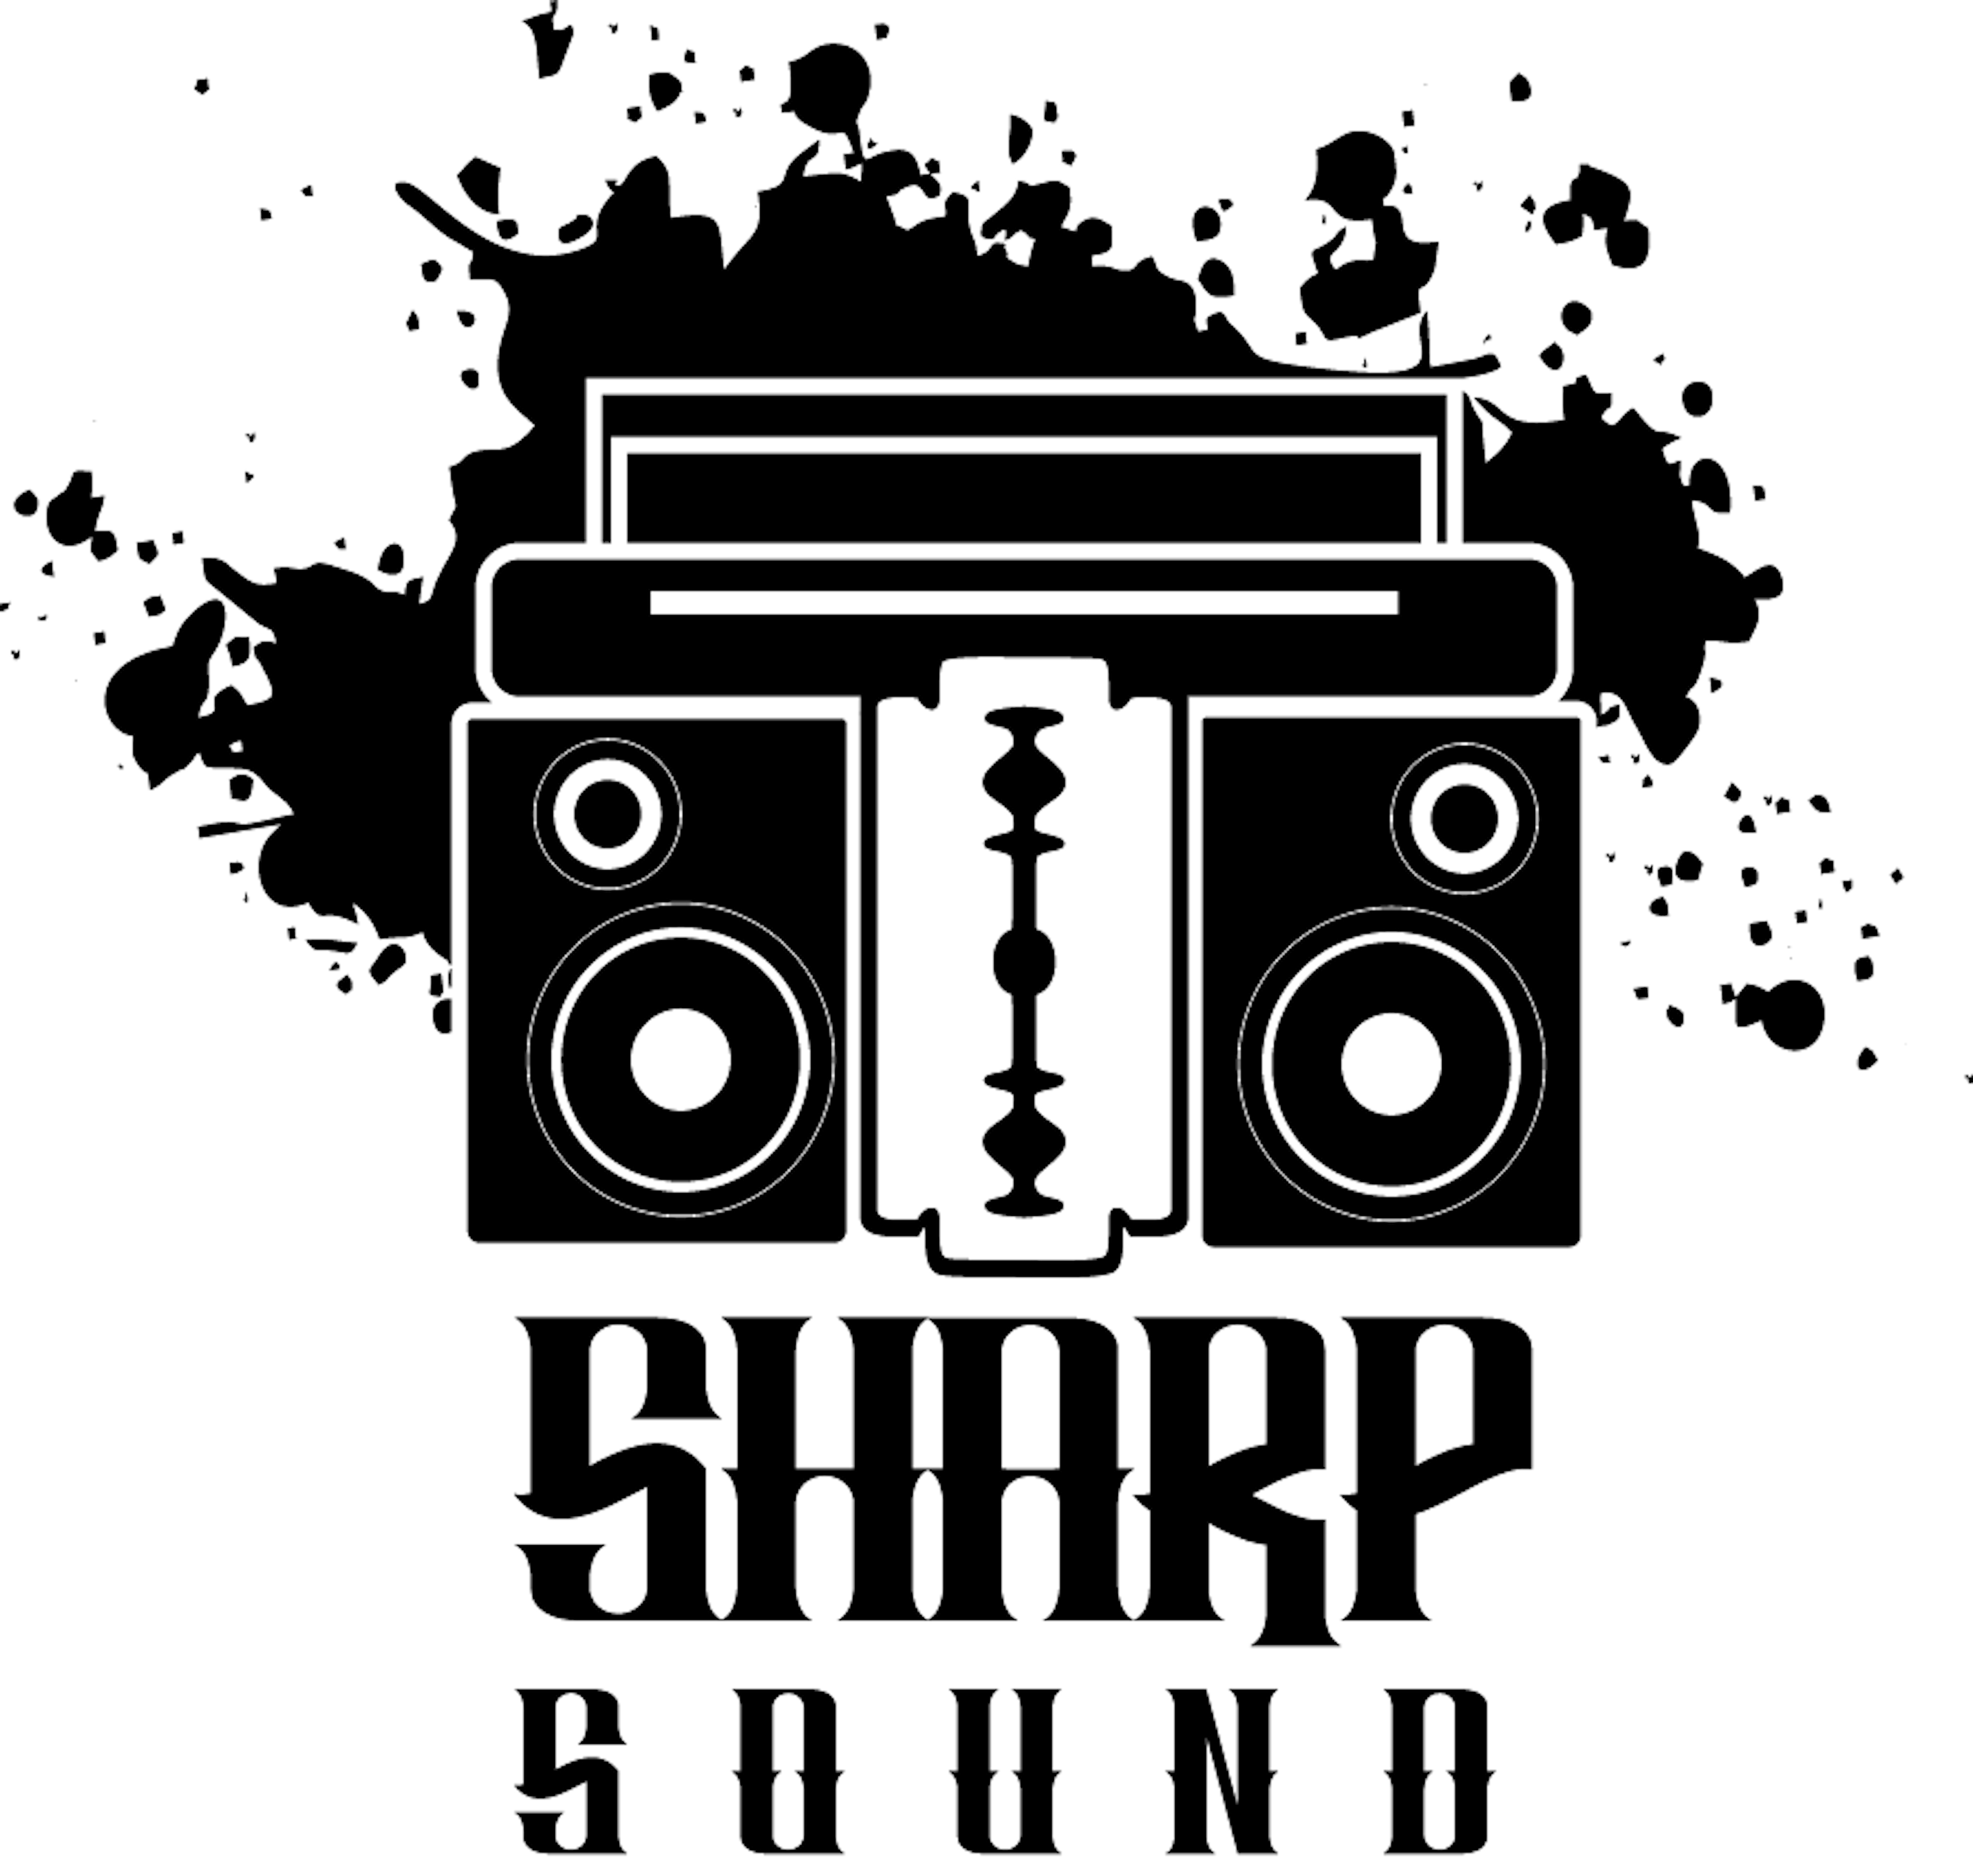 Sharp Sound logo